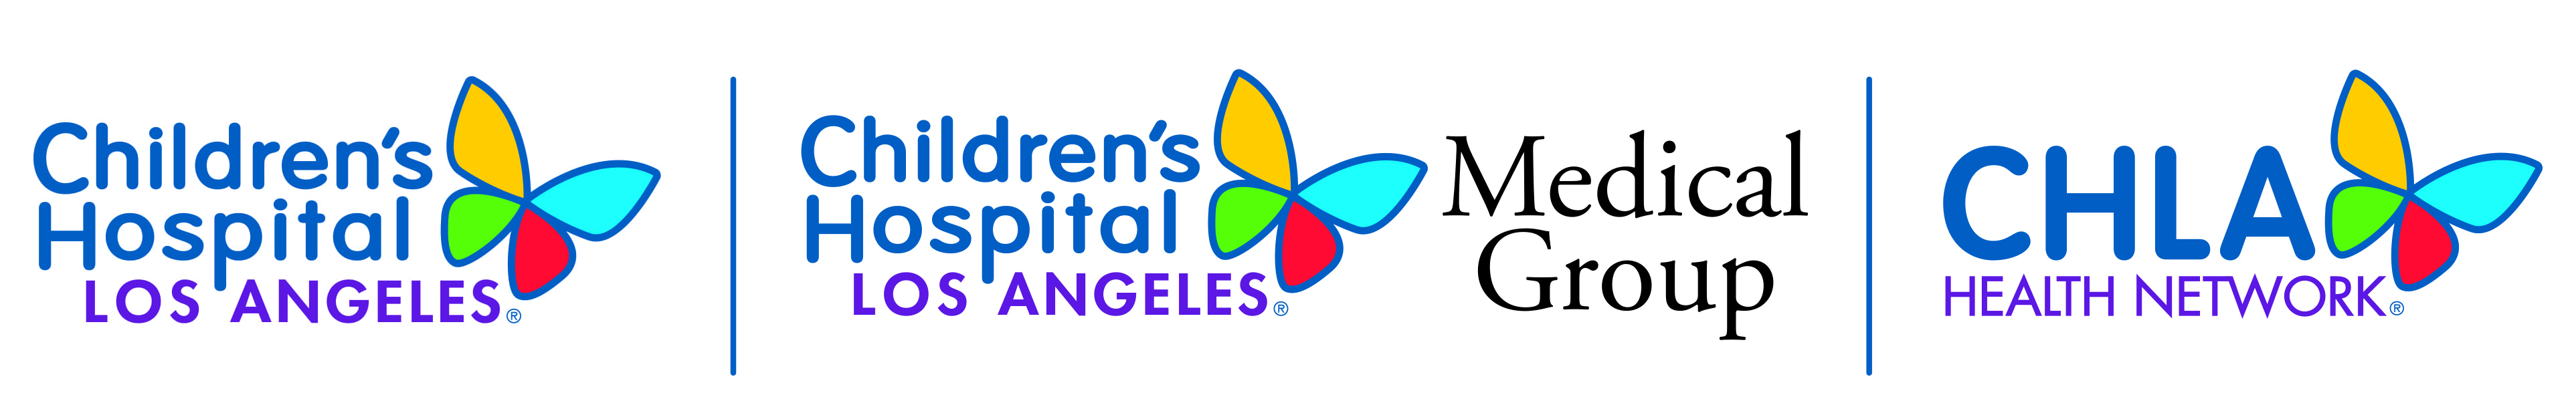 CHLA Butterfly Logo®MEDICAL GROUP + CHLA + HEALTH NETWORK FINAL.jpg